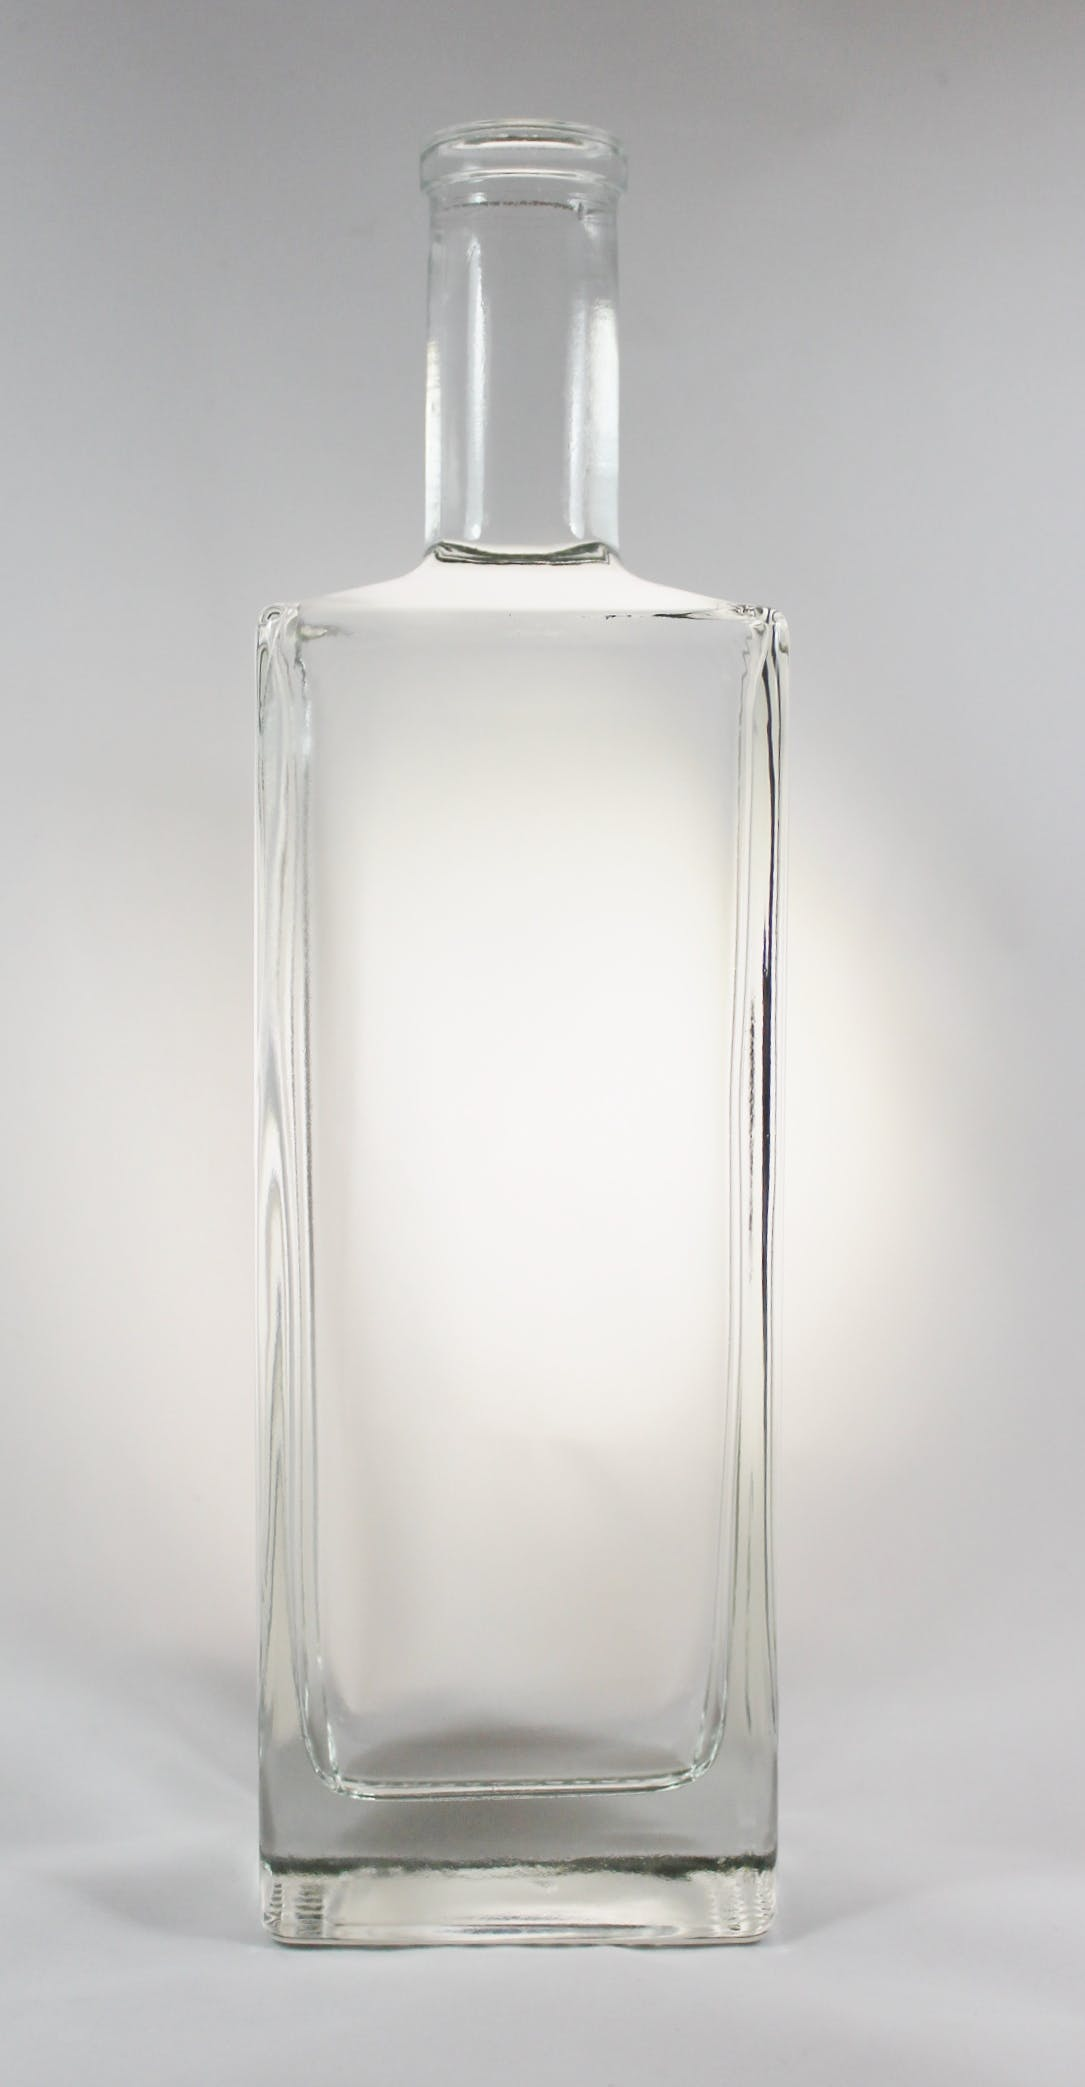 750 ml Liberty Rectangle Bar Top Liquor bottle sold by Wm. R. Hill & Company